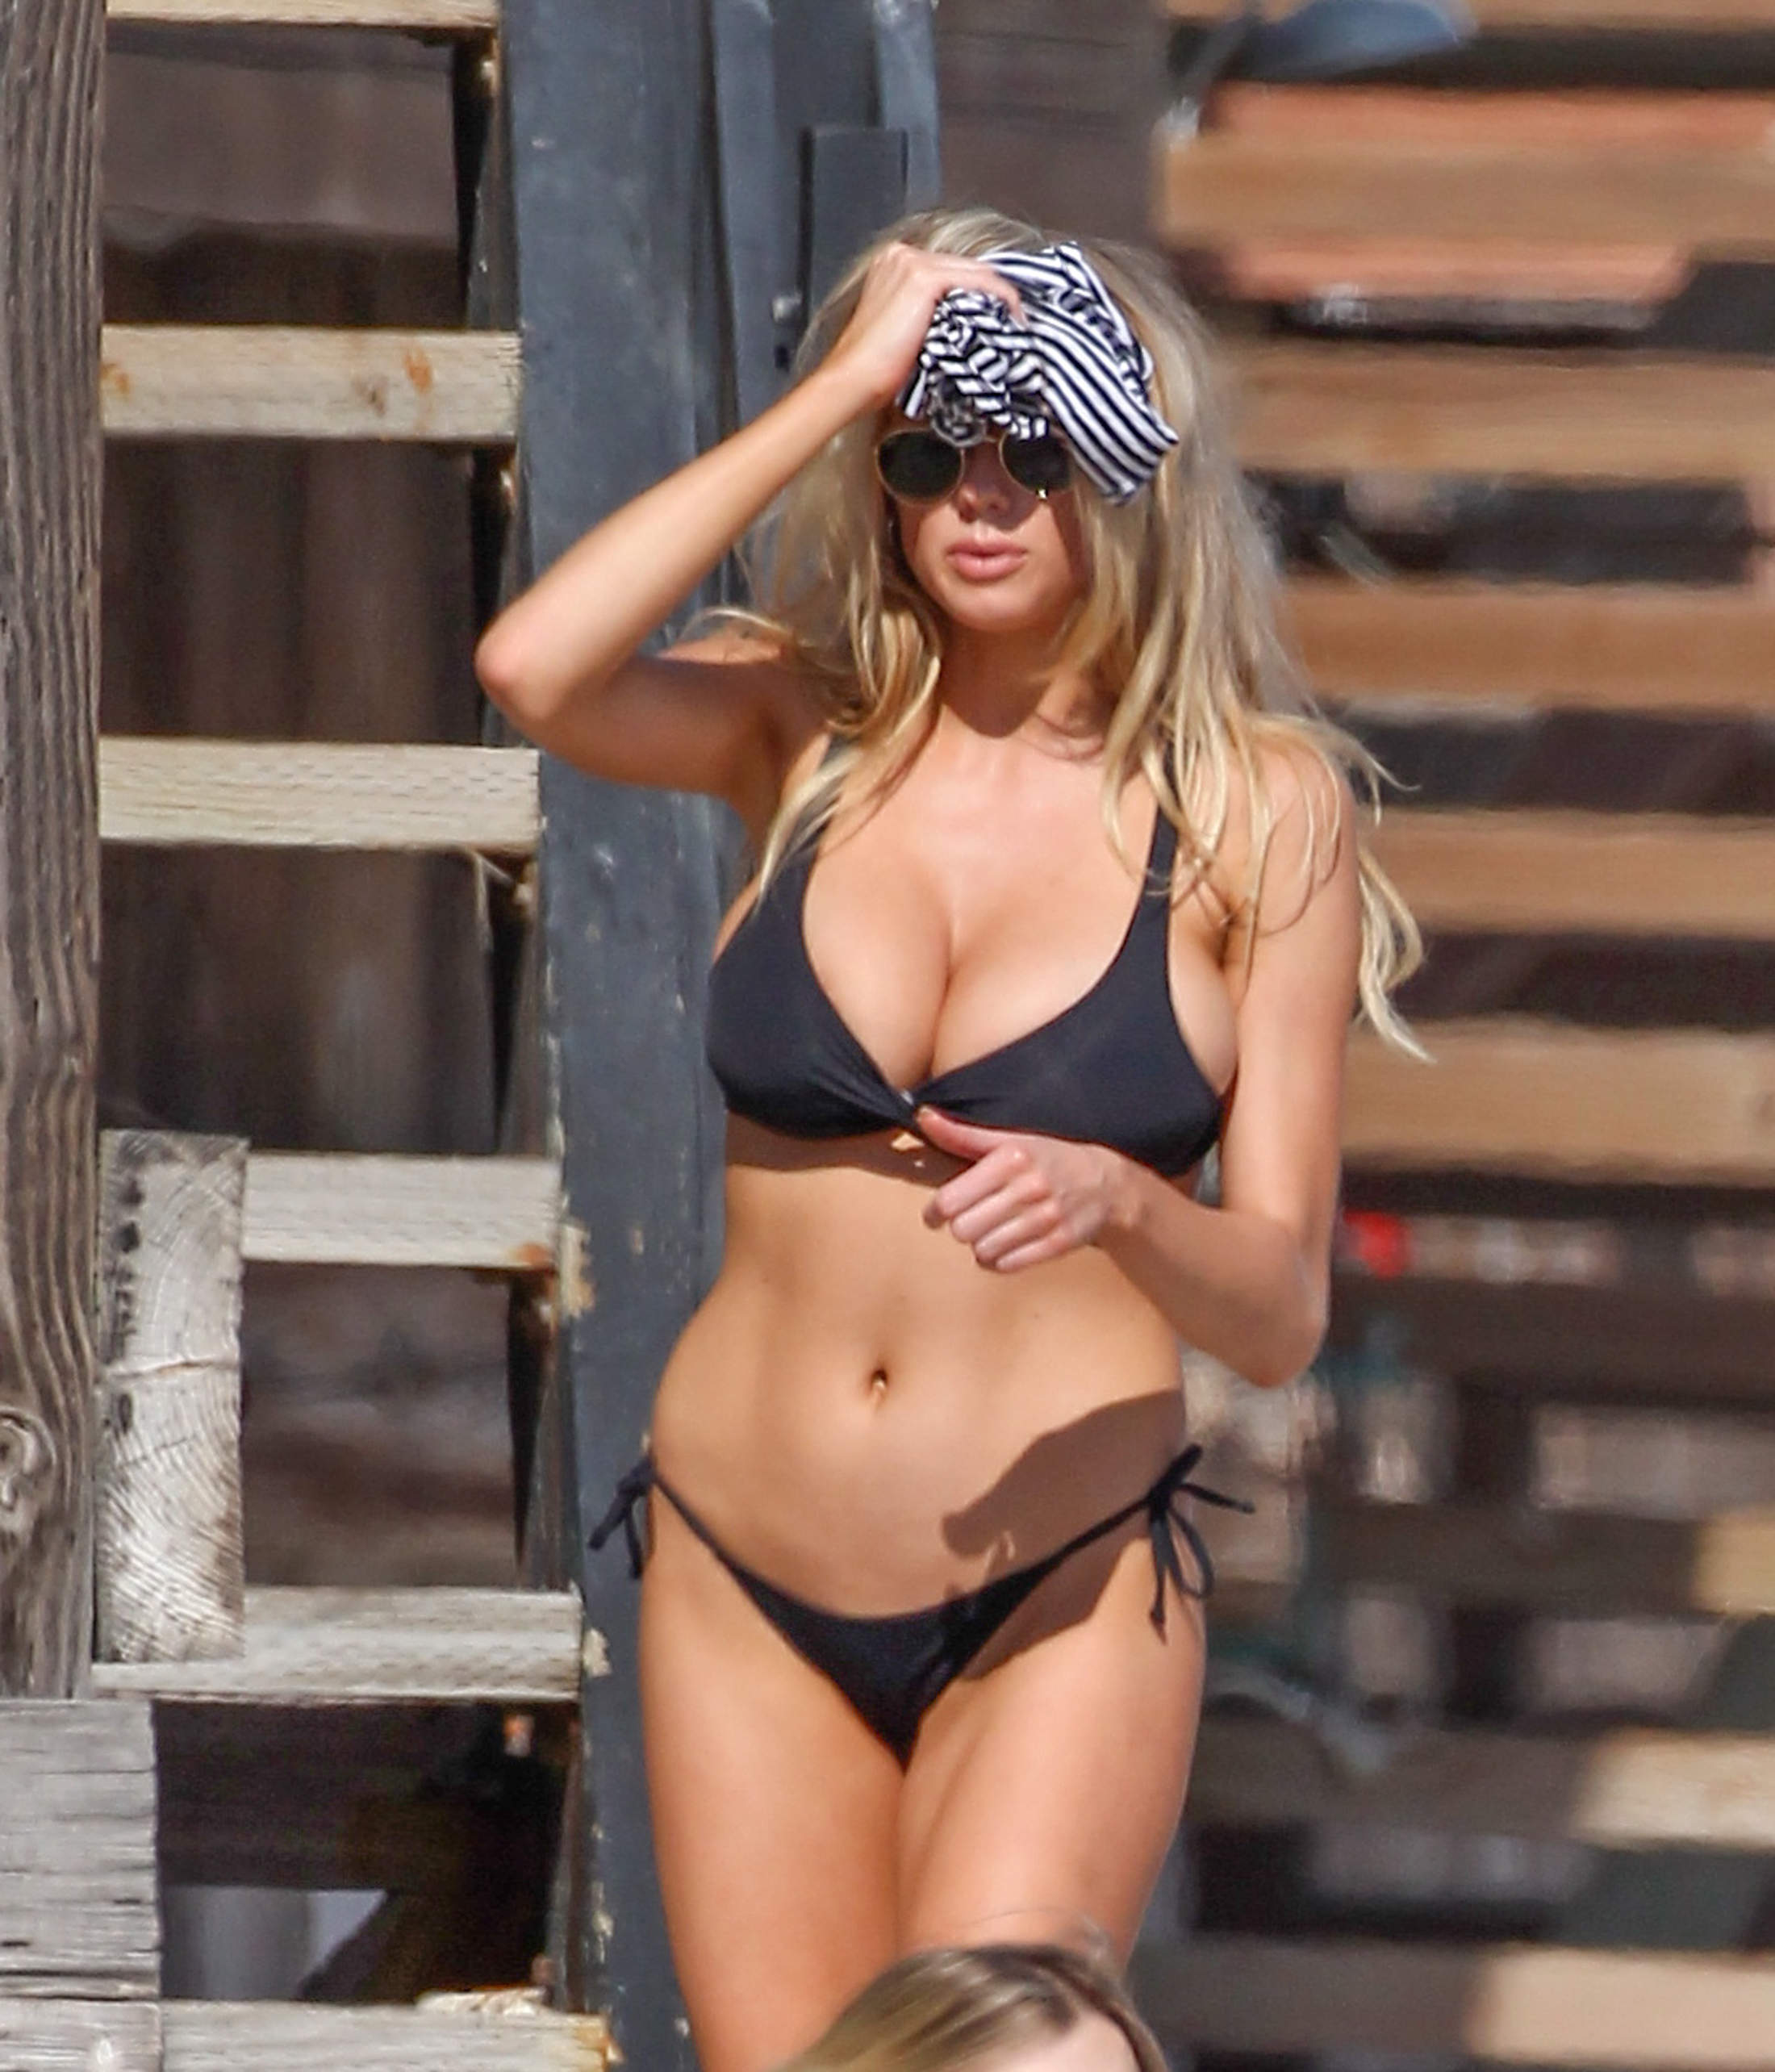 52097274 Actress and model Charlotte McKinney shows off her bikini body in Malibu, California on June 18, 2016.  At one point, she took off her tank top to work on her tan. FameFlynet, Inc - Beverly Hills, CA, USA - +1 (310) 505-9876